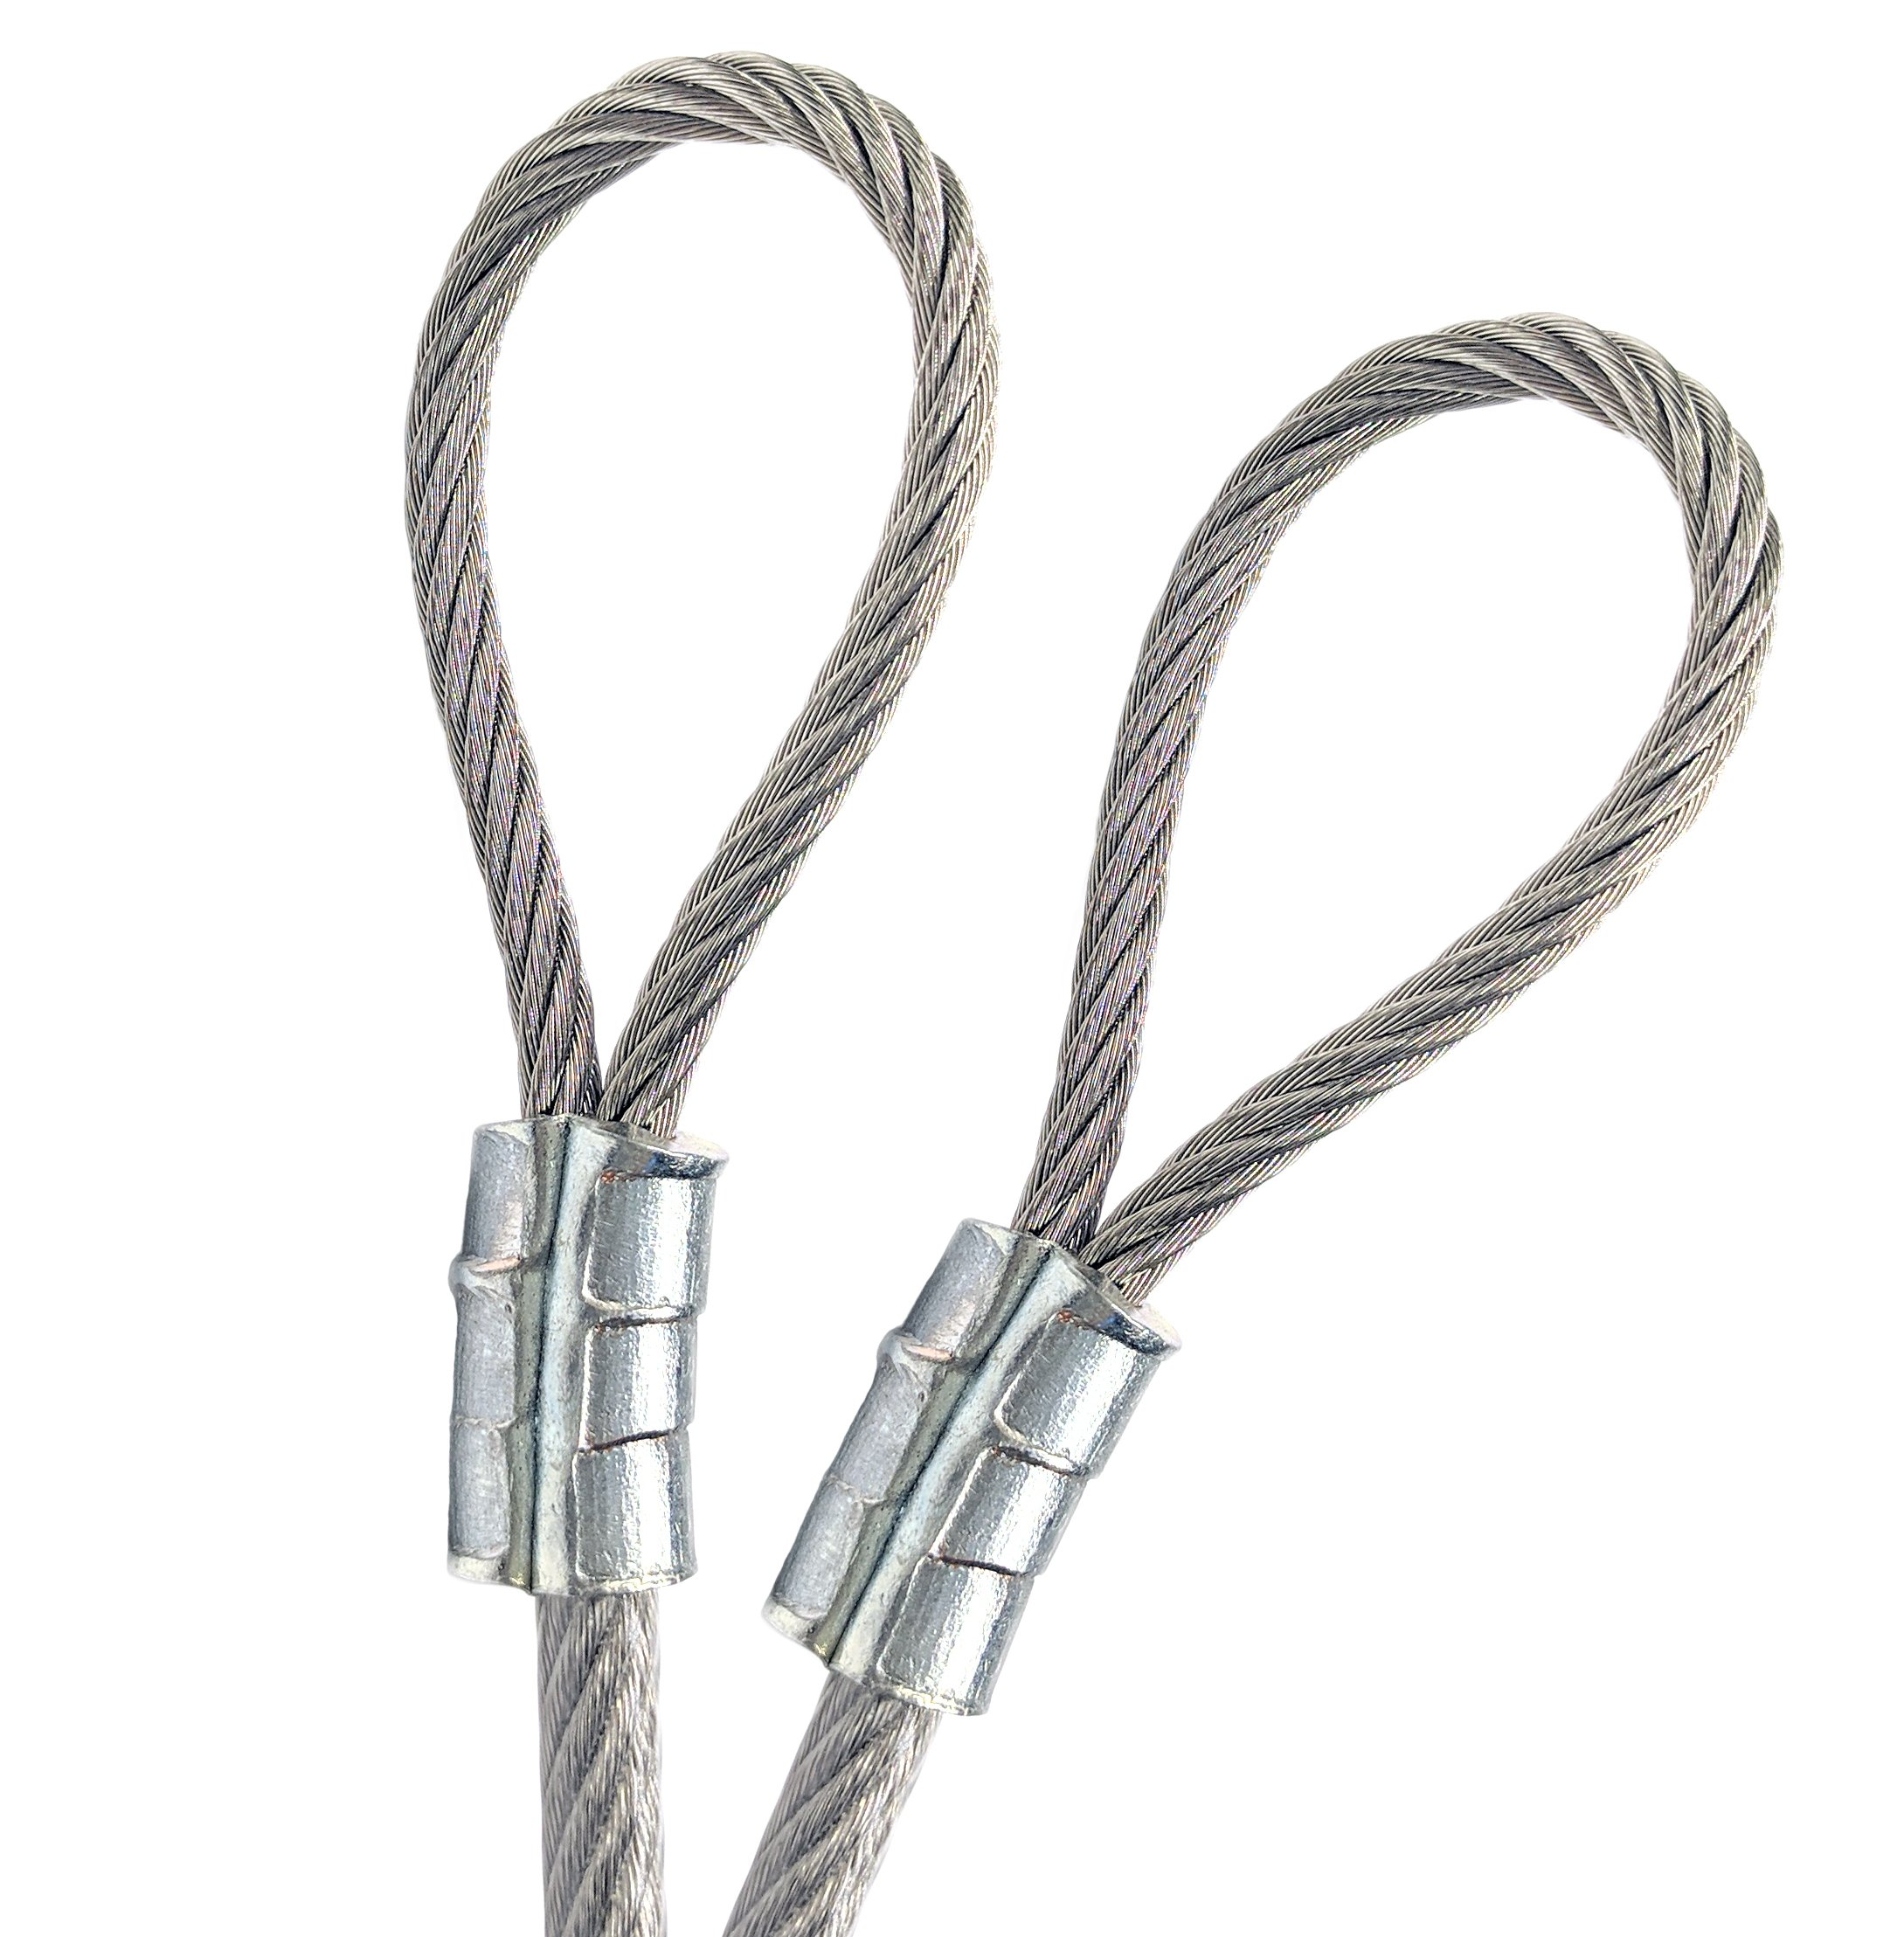 50ft Custom Cut Globe String Light Guide Cable Galvanized Steel Wire Rope 1/8'' - 3/16'' Vinyl Coated Double Loop Zinc Plated Sleeves Indoor Outdoor Clothesline Decorative Marine Commercial Application